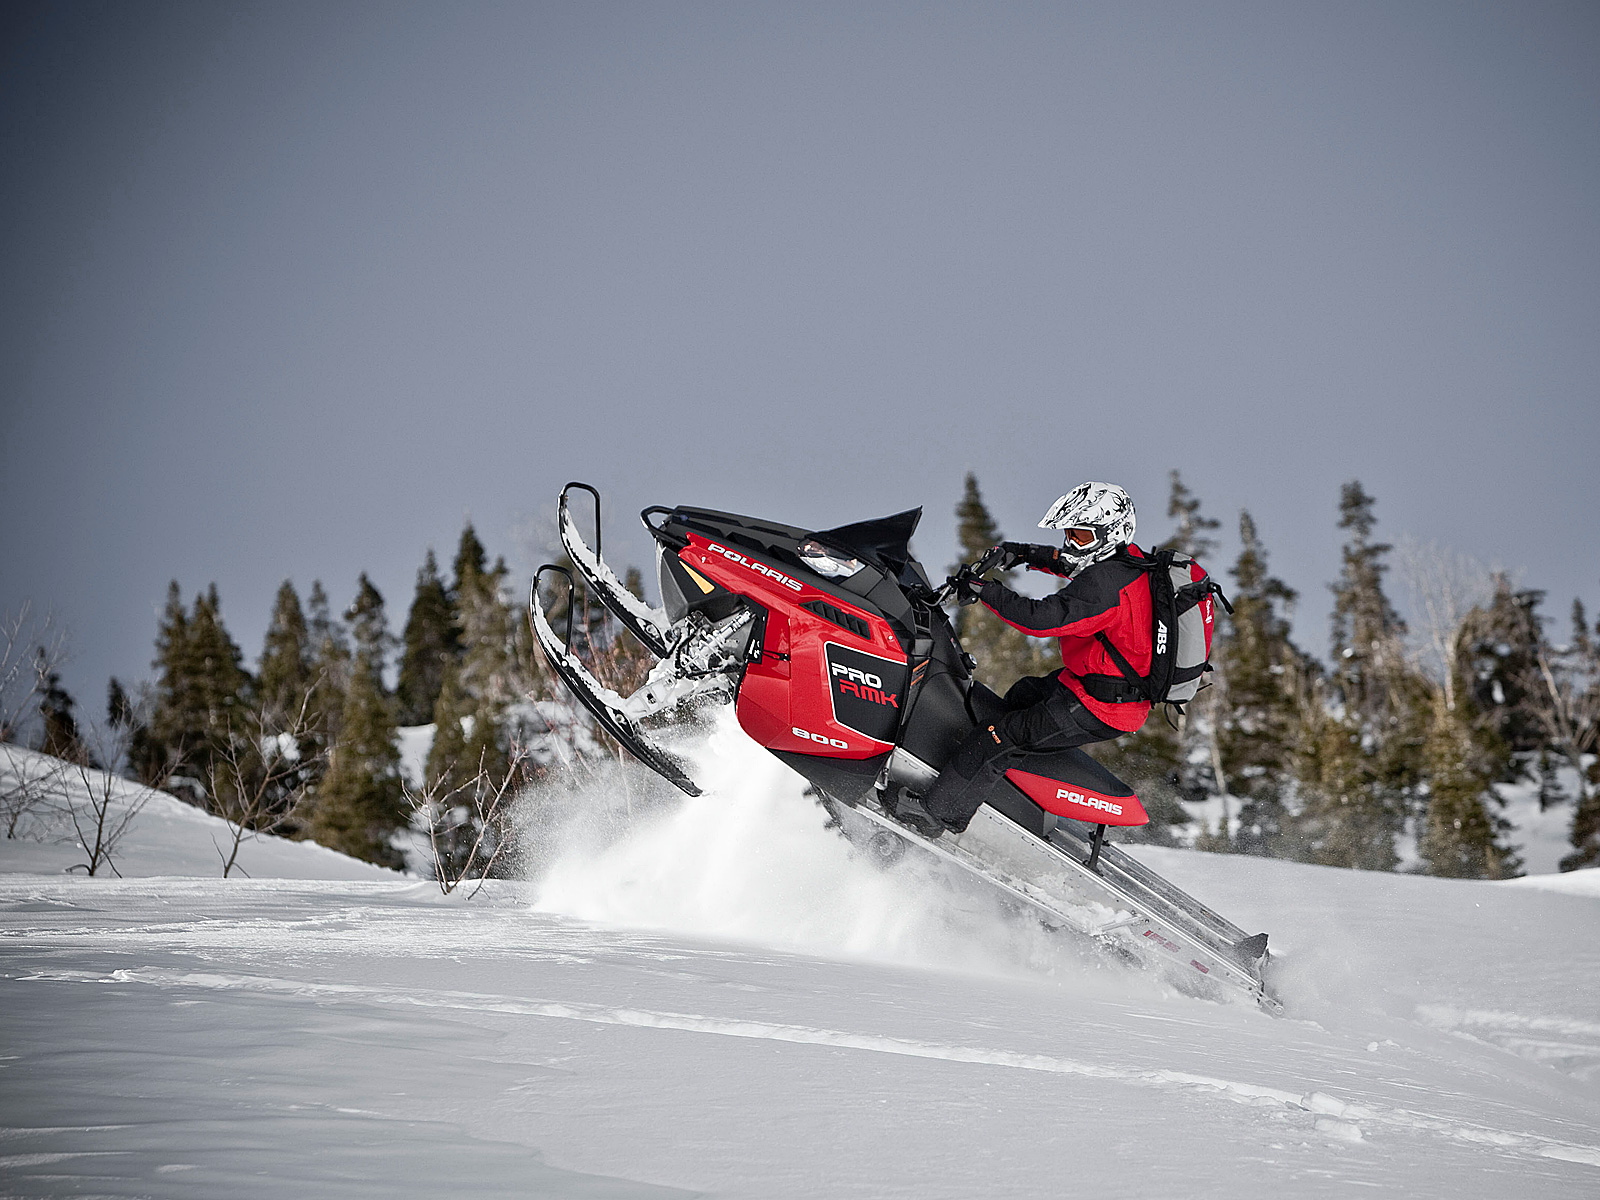 23 Awesome <b>HD Snowmobile Wallpapers</b> - HDWallSource.com